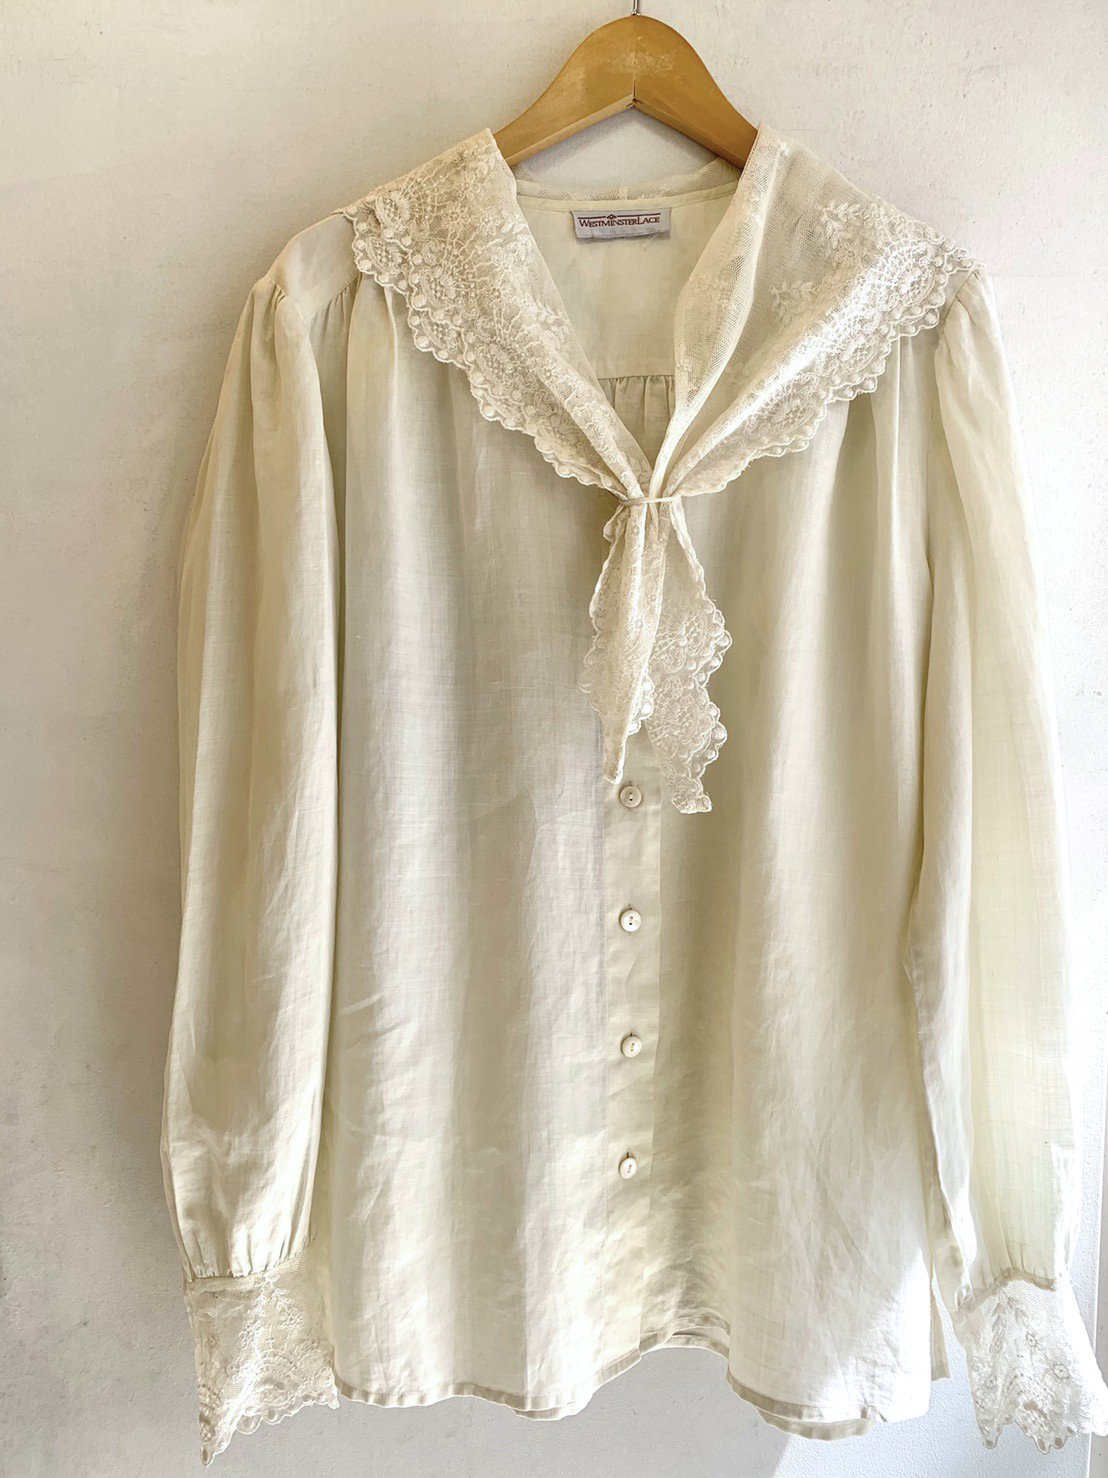 1.lace sailor blouse